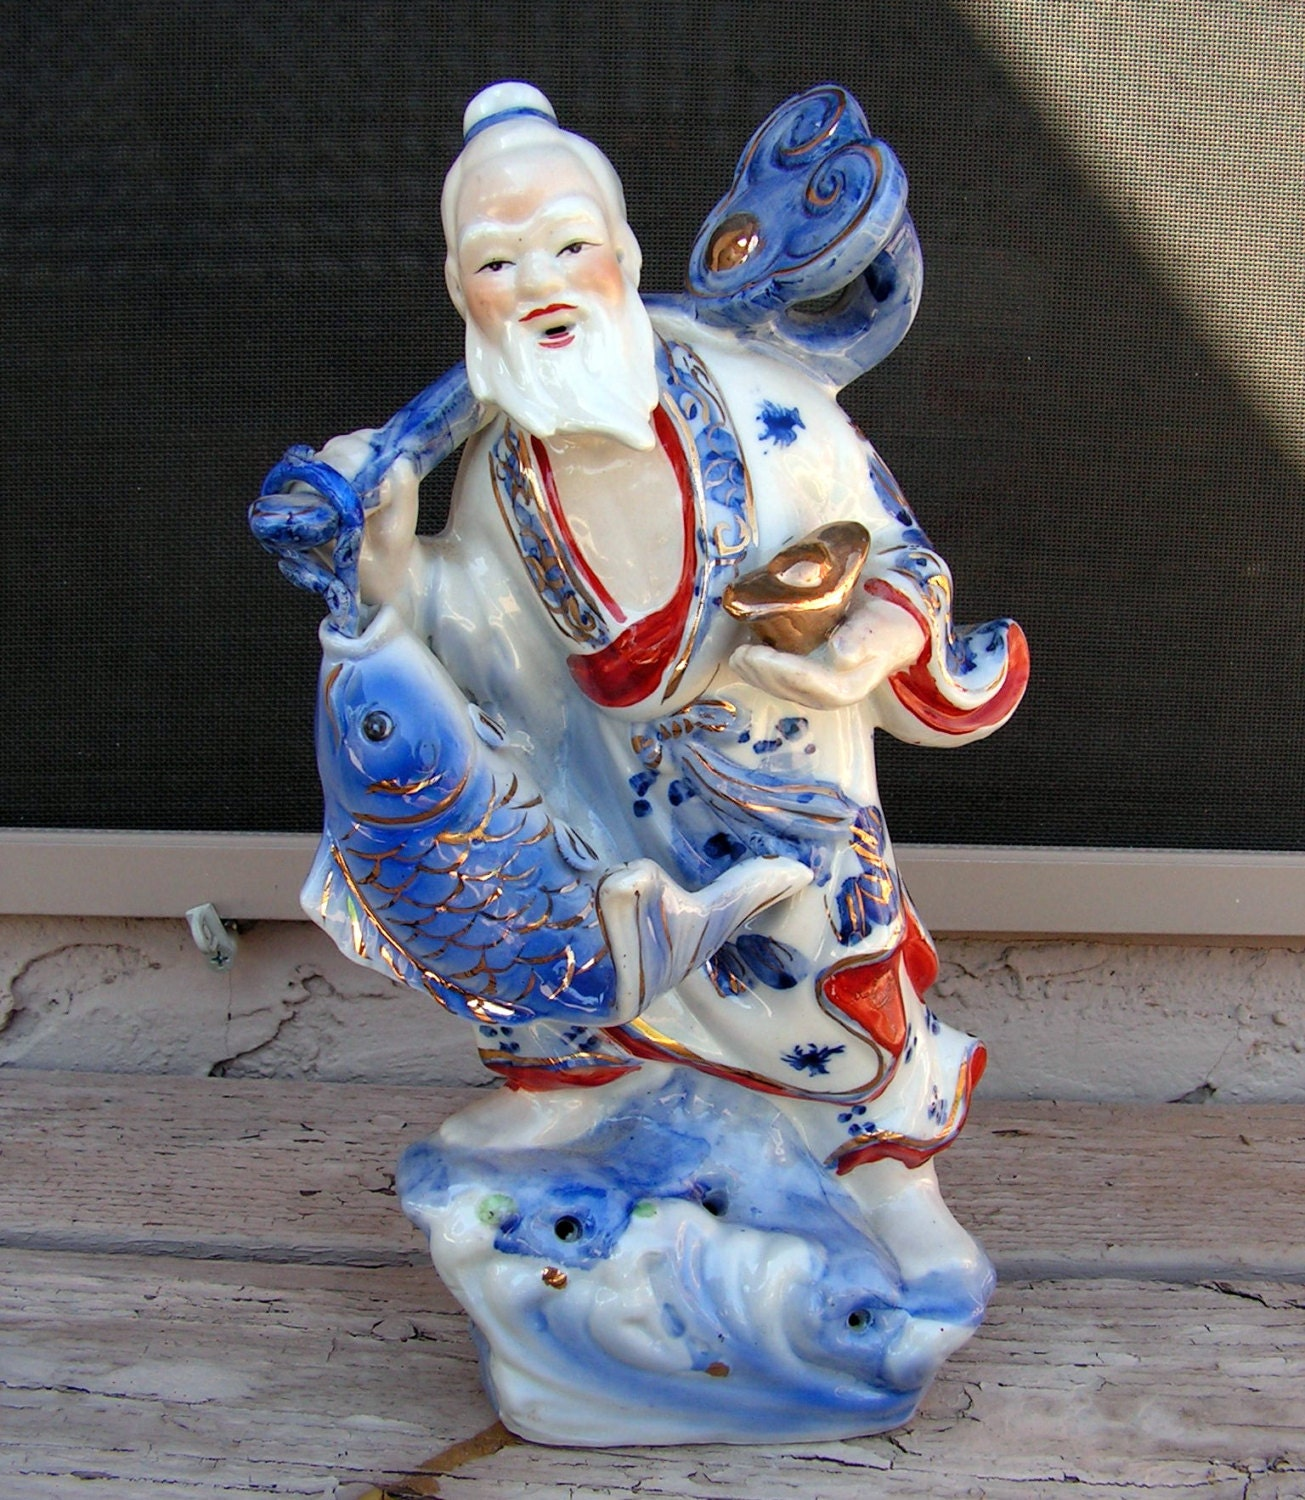 Where Can I Buy Some Ceramic Figures To Paint